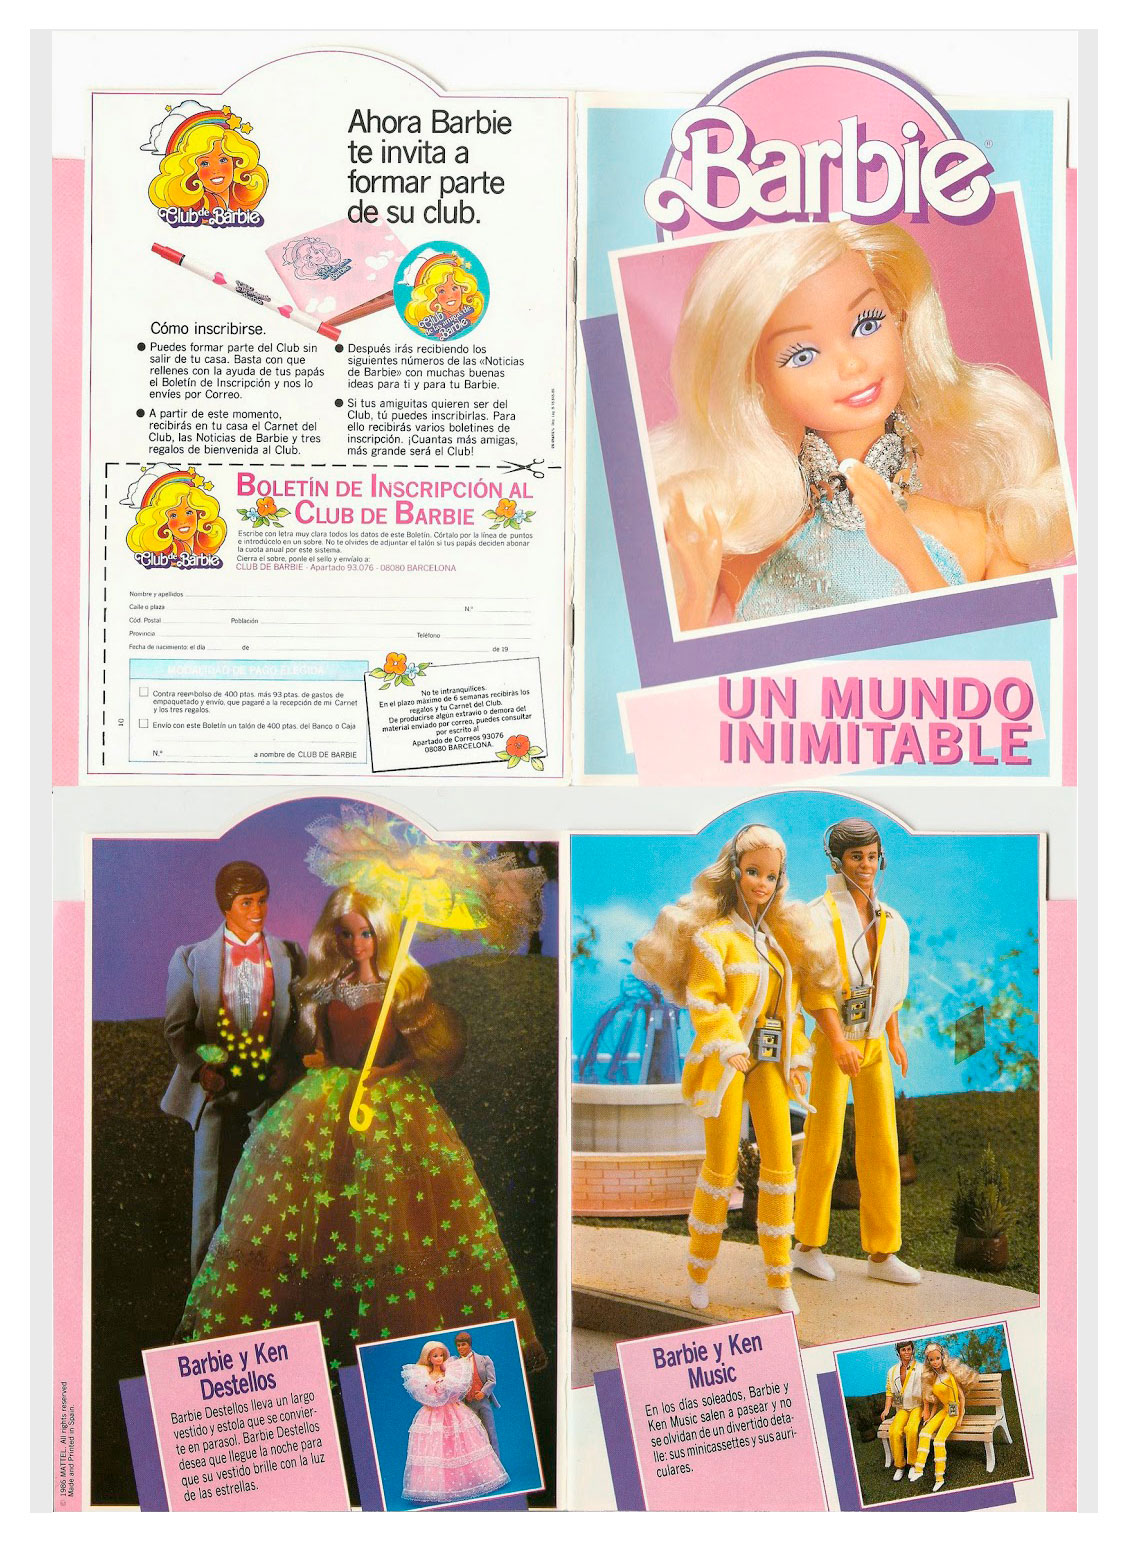 From 1986 Spanish Barbie booklet